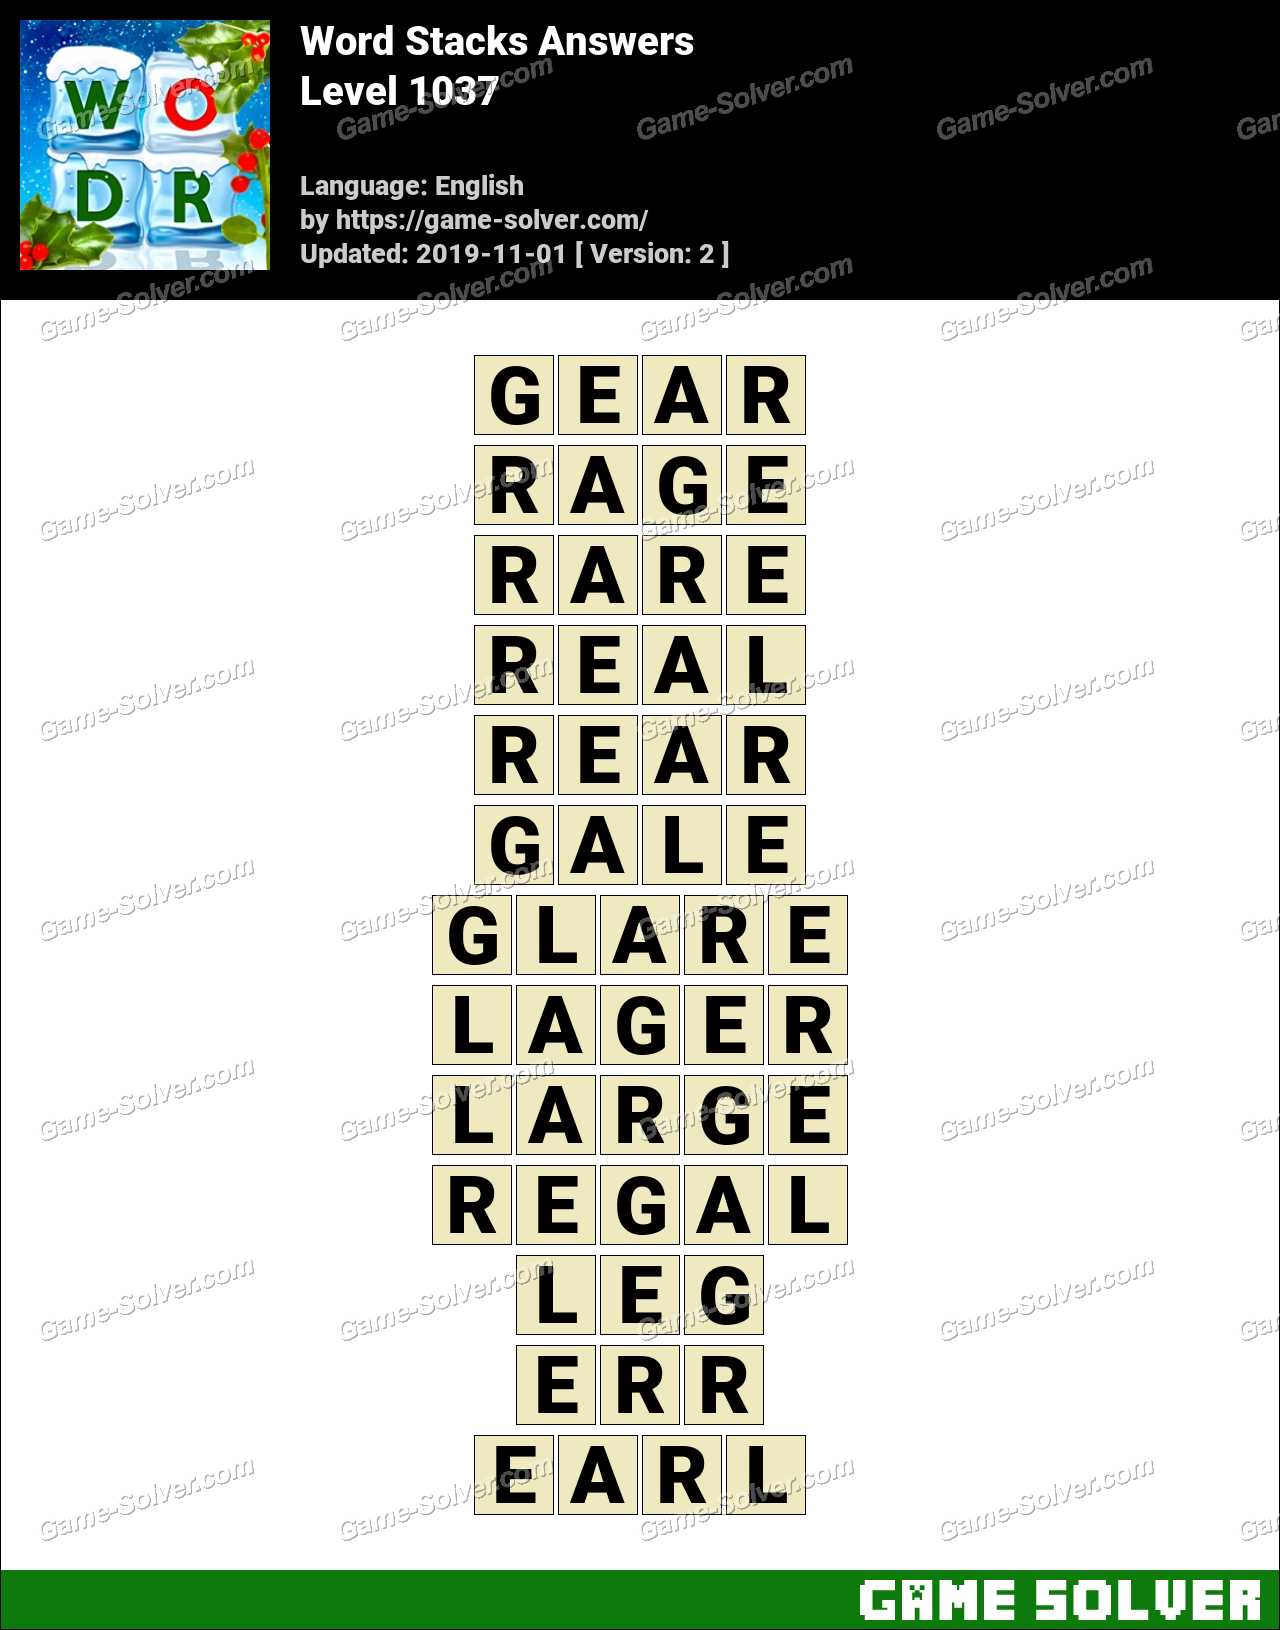 Word Stacks Level 1037 Answers